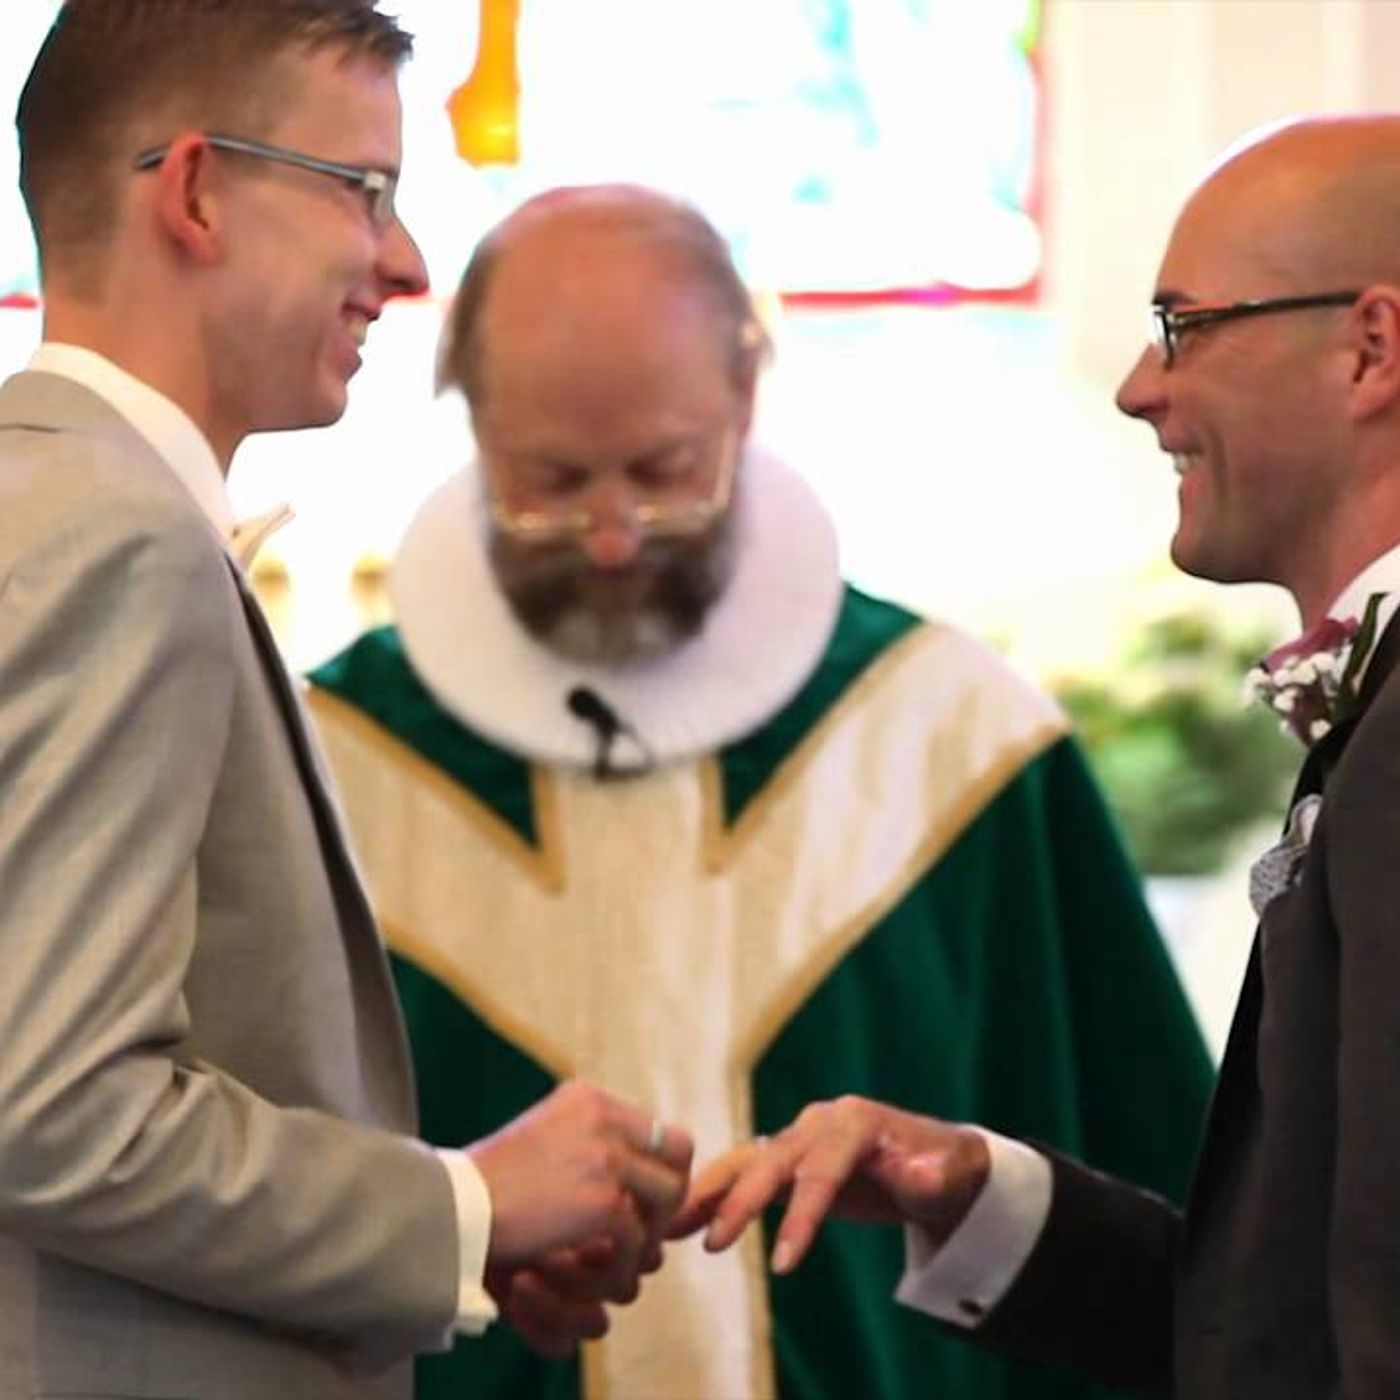 Methodist Church Plans to Split over Gay Marriage